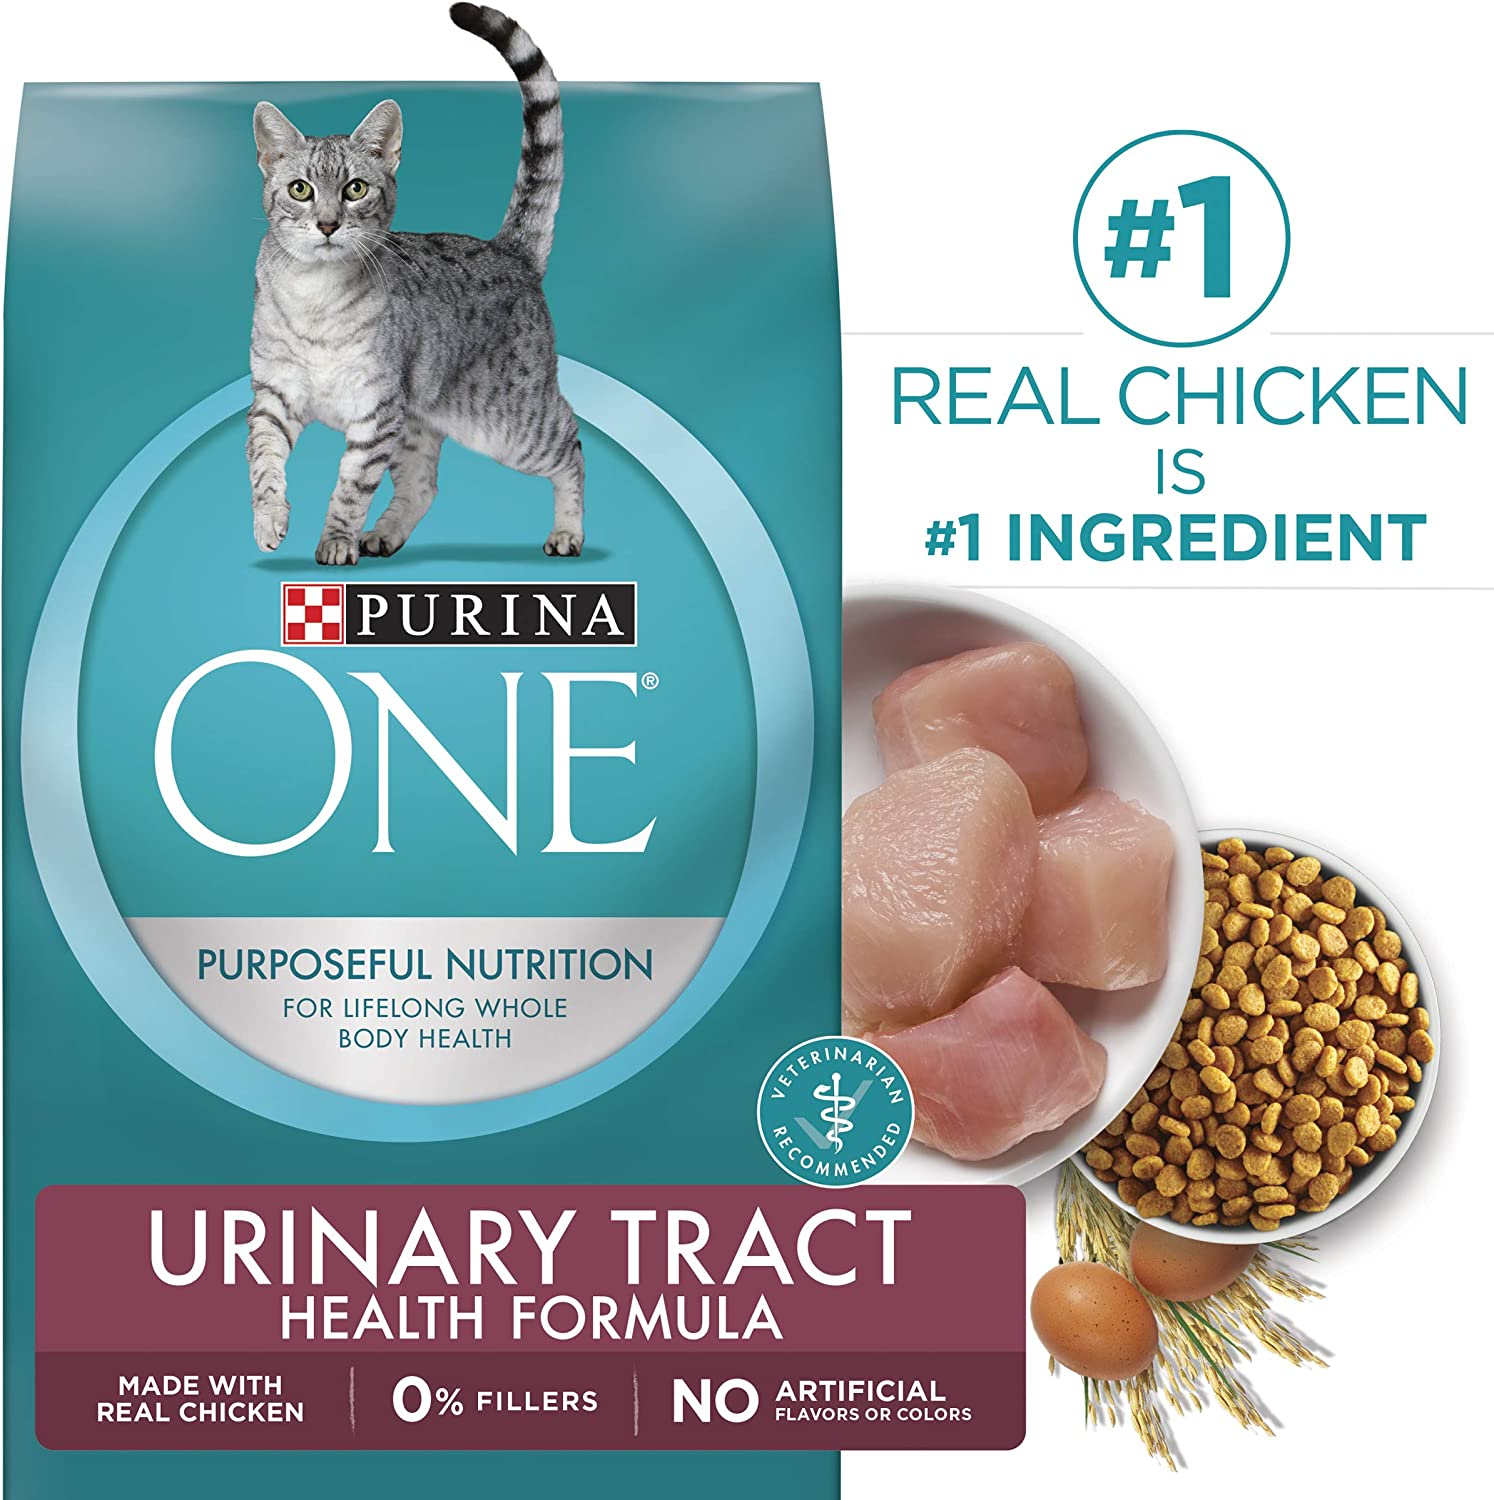 Purina ONE Dry Cat Food, Urinary Tract Health Formula, 7Pound Bag, Pack of 1